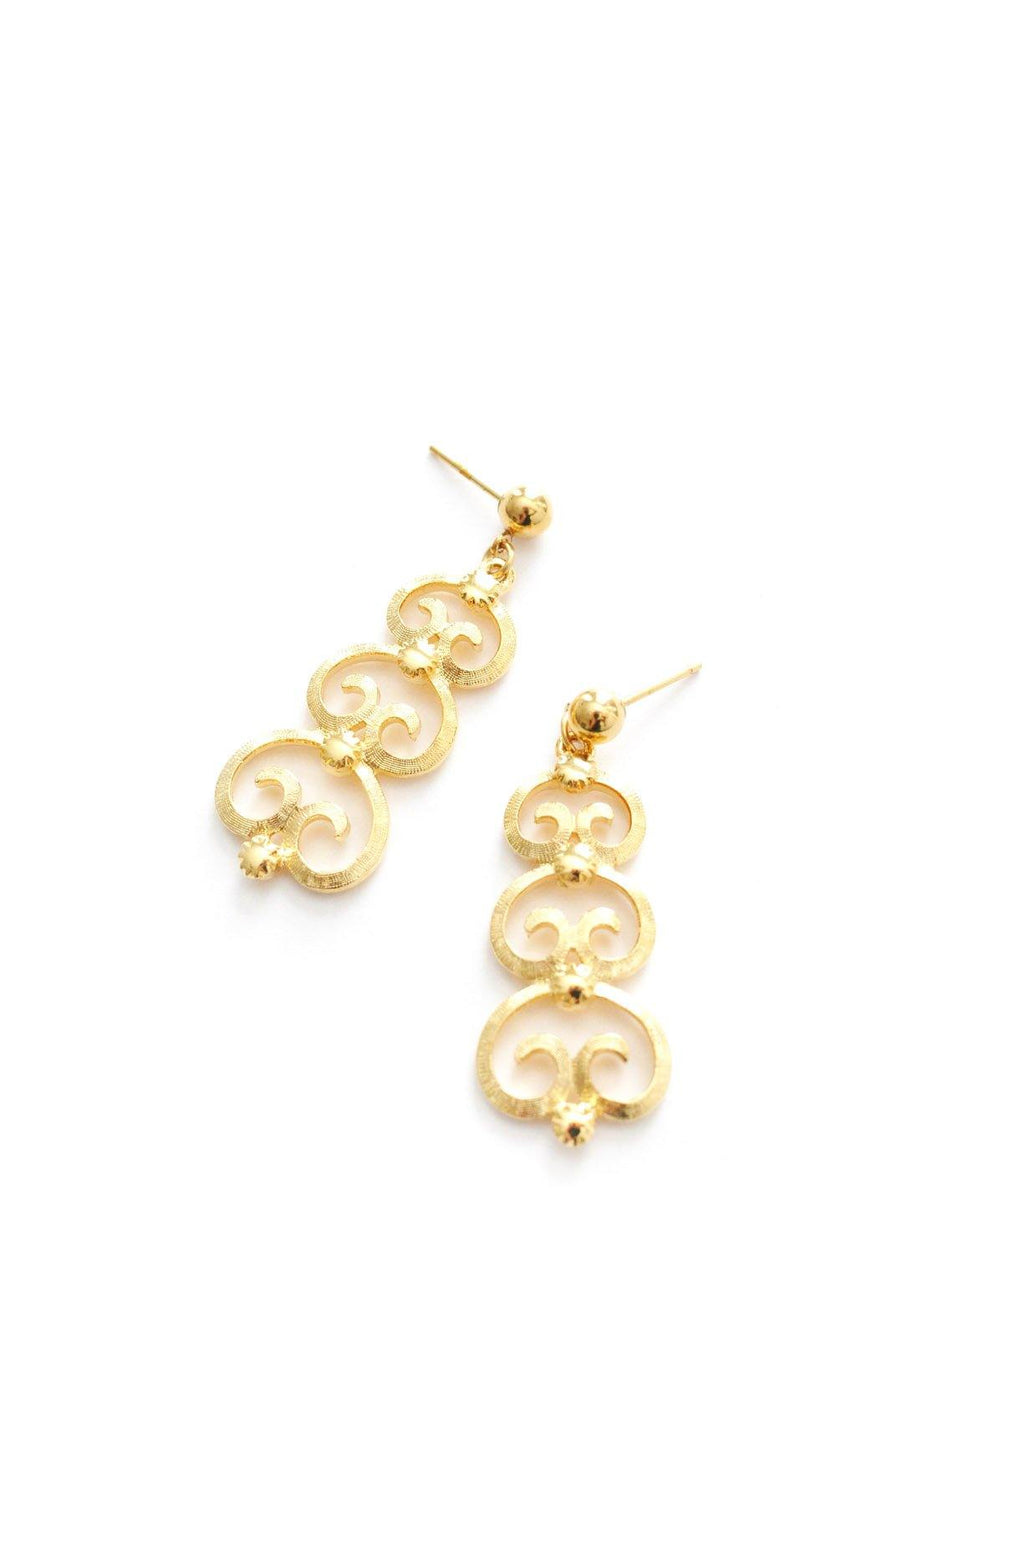 Scrolls Pierced Earrings